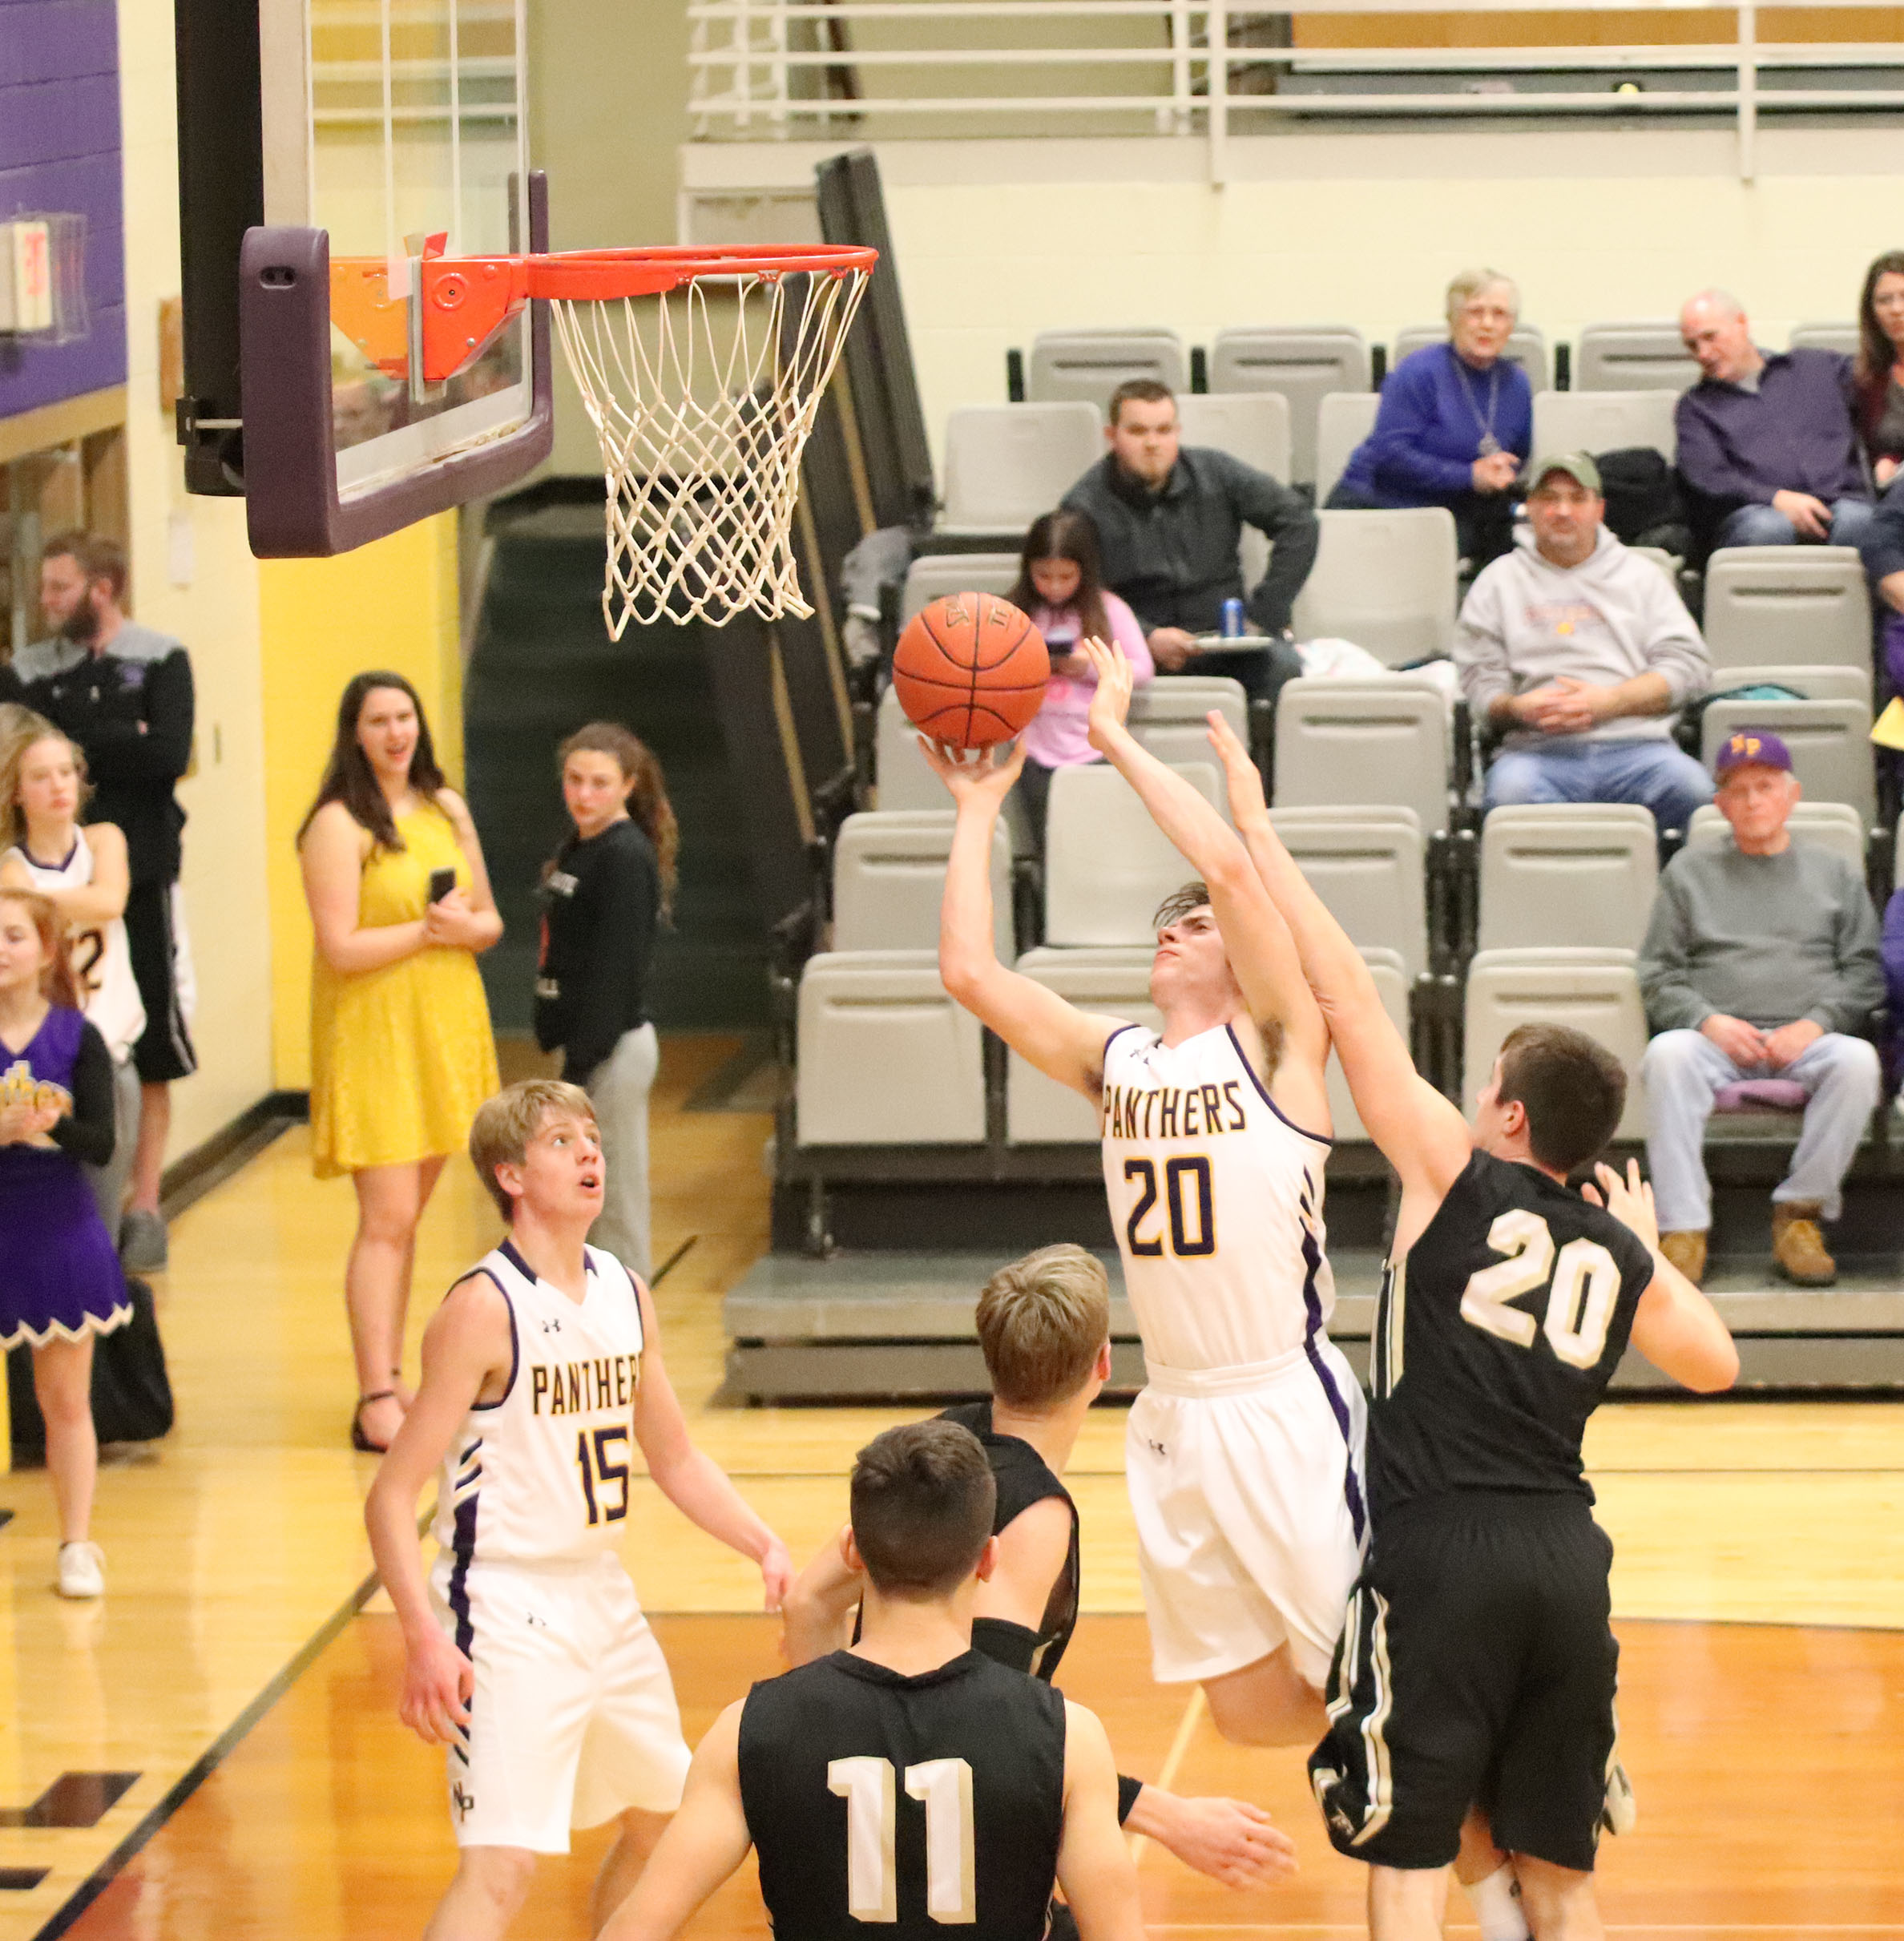 CODY THORN/Citizen photo  North Platte's Ty French, shooting, draws a foul by Lathrop's Colton Nichols during the second half of a KCI Conference game on Thursday, Jan. 17 in Dearborn, Mo.